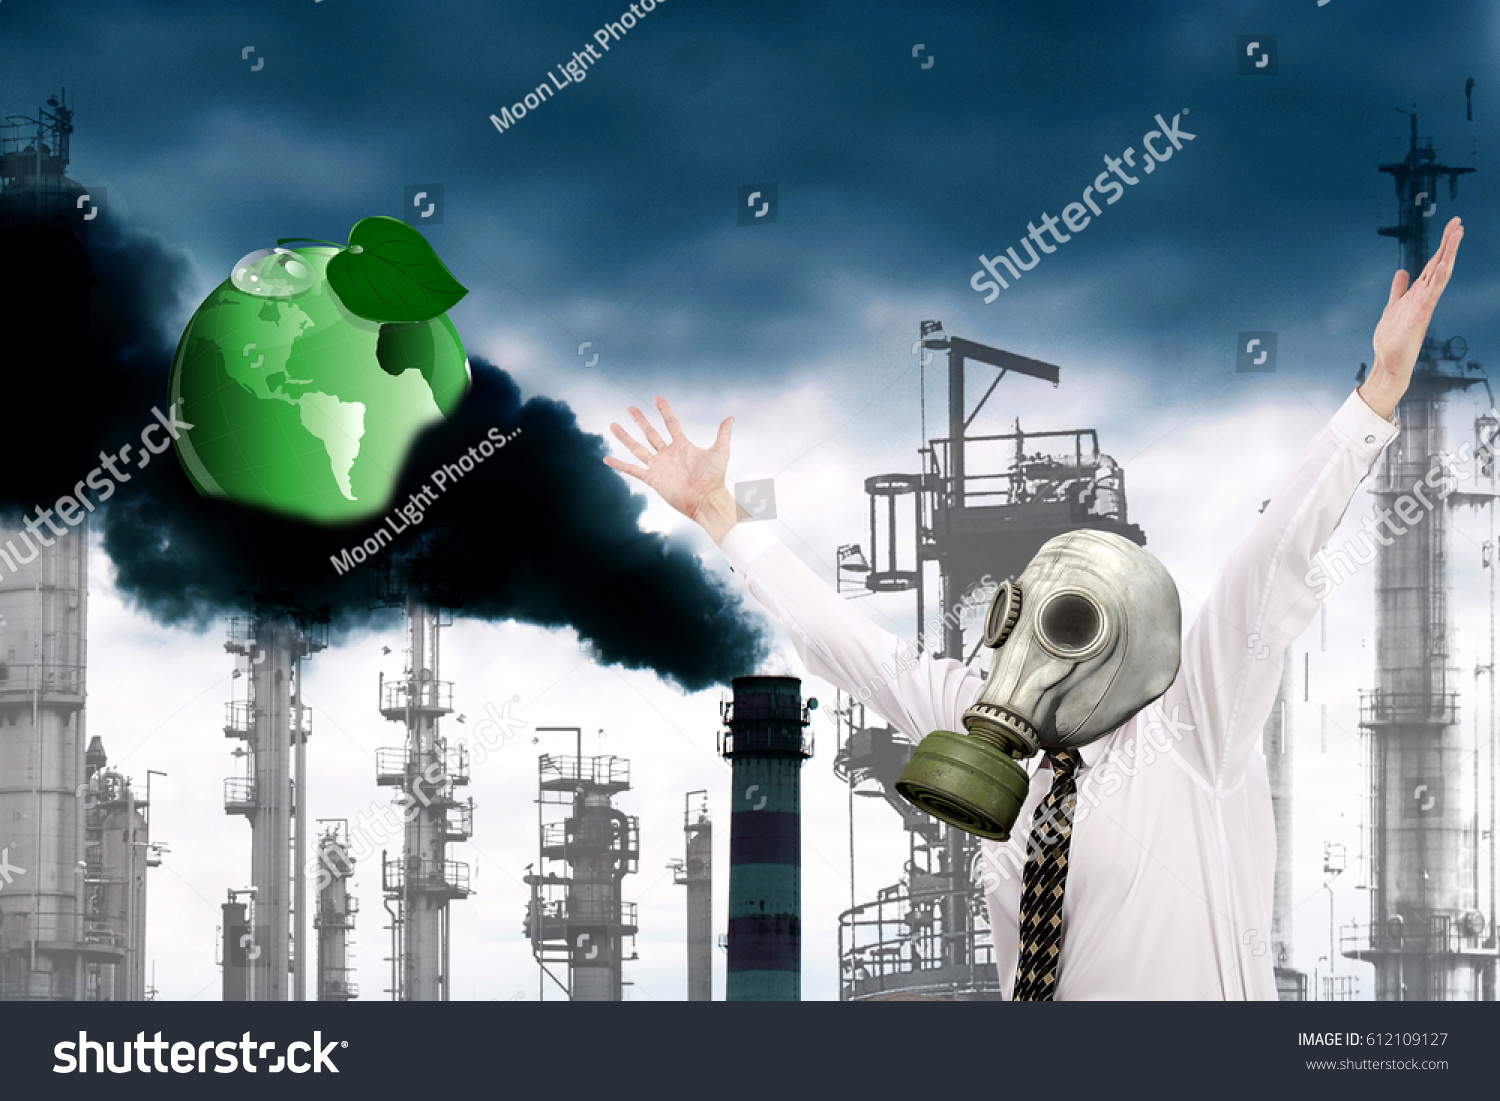 Frightened Engineer Ecologist Gas Mask Against Stock Photo Edit Now 612109127 However, completing it gives you a kemp will ask you to retrieve three engineering volumes: shutterstock